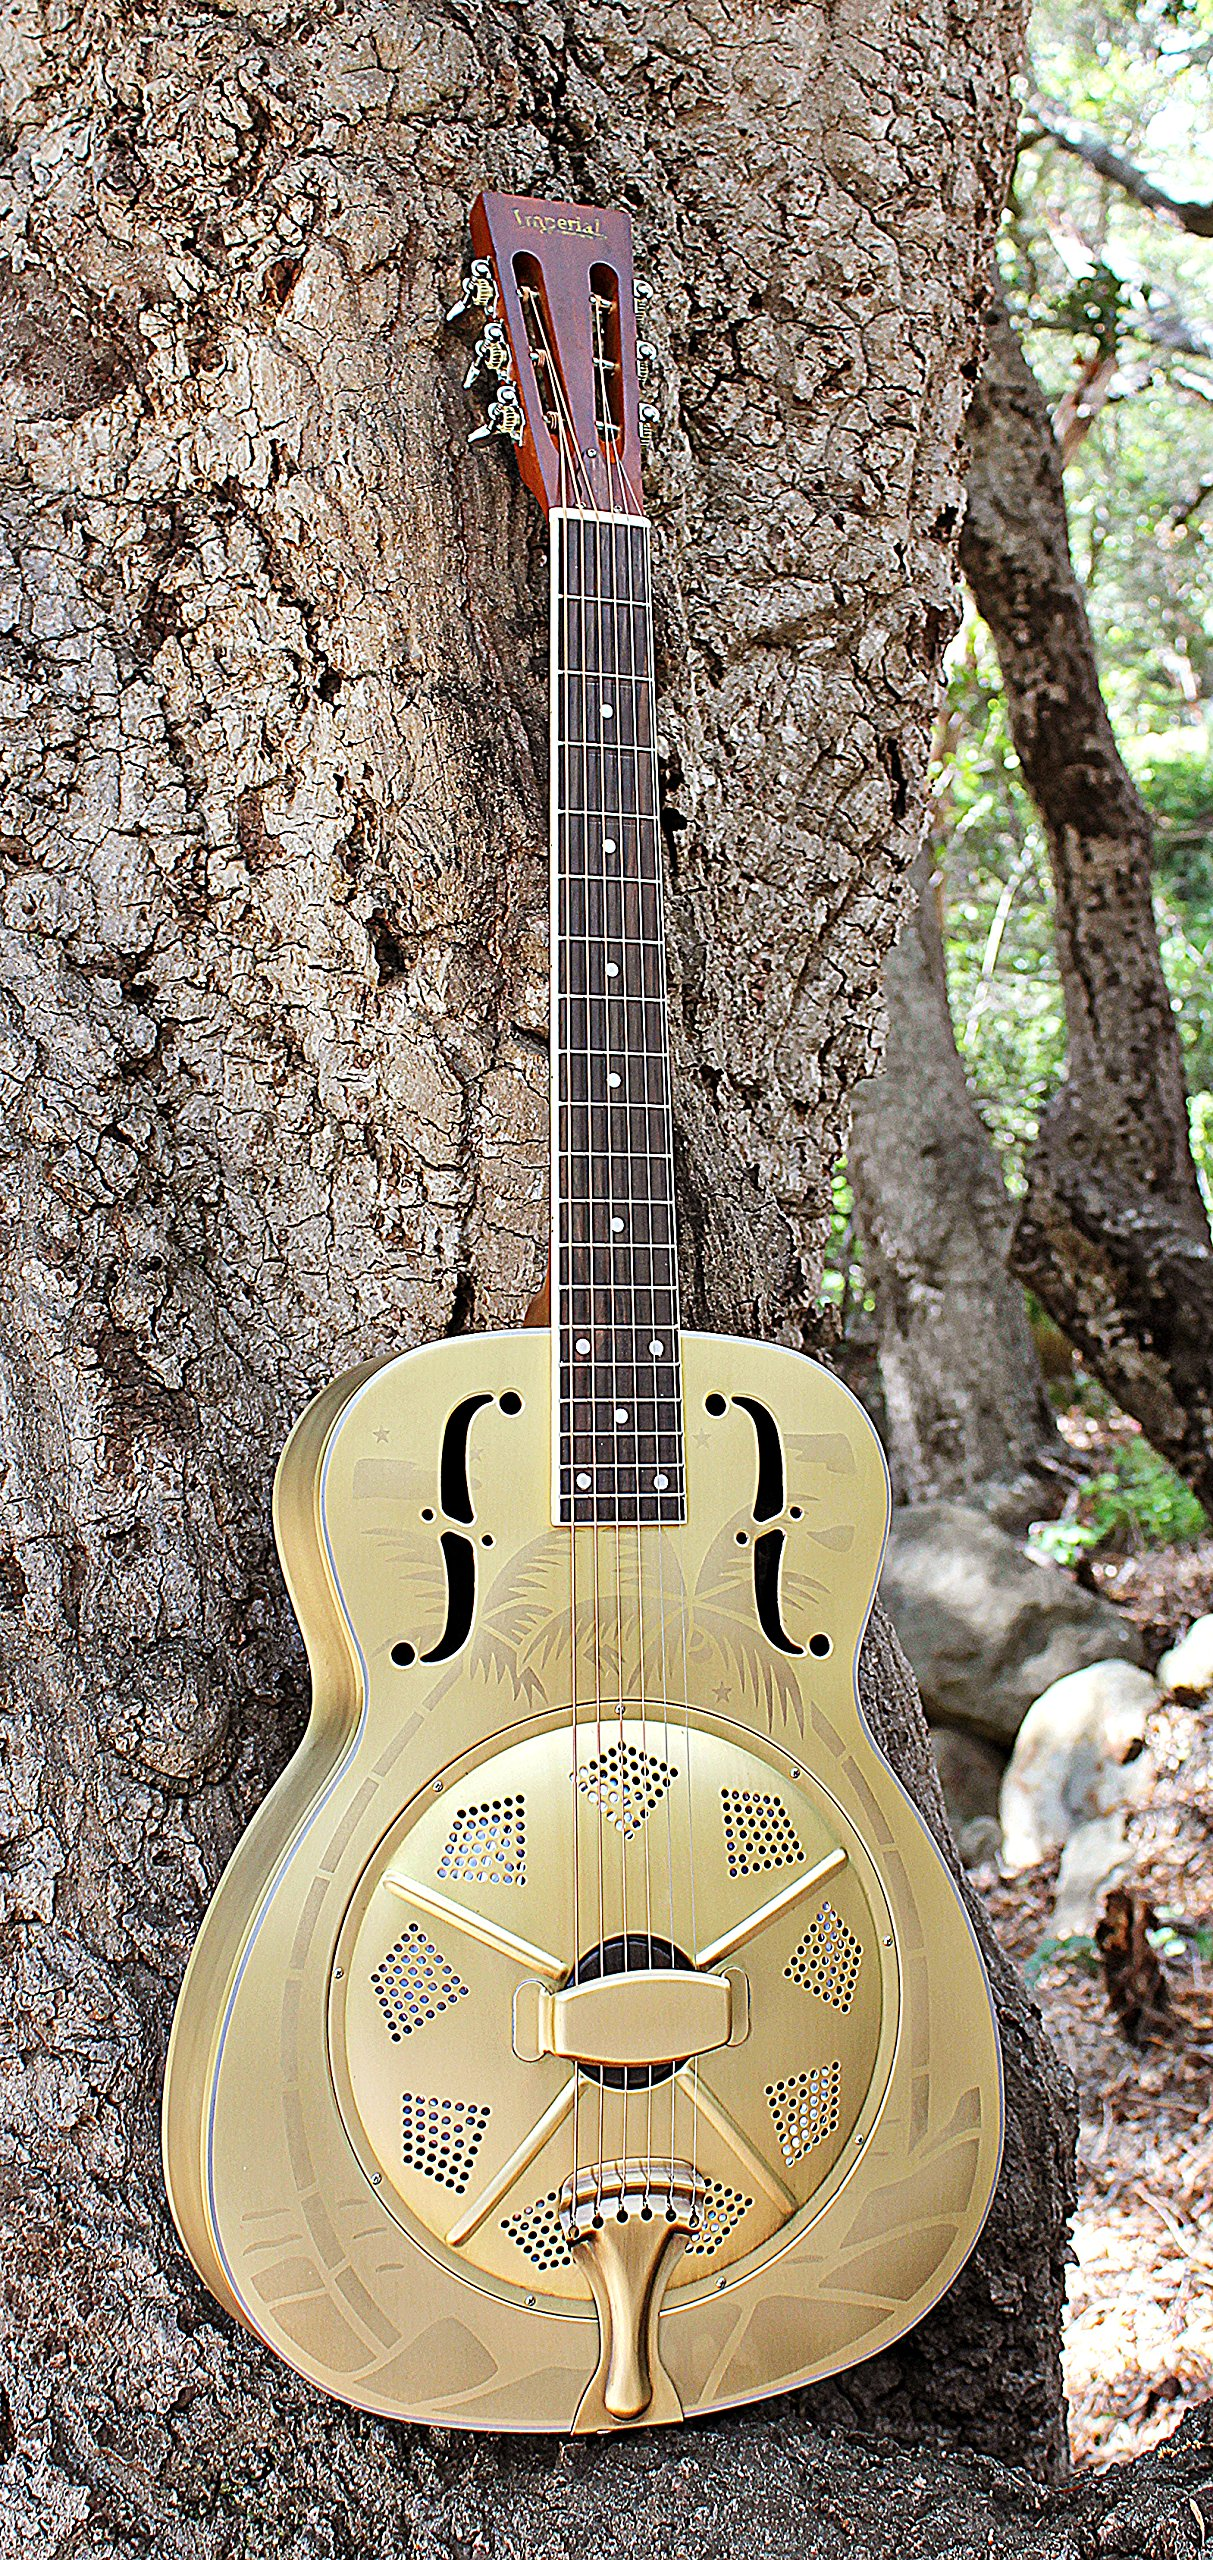 Imperial Palmulator Brass Body Resonator Guitar with Tropical Palm Tree Etching